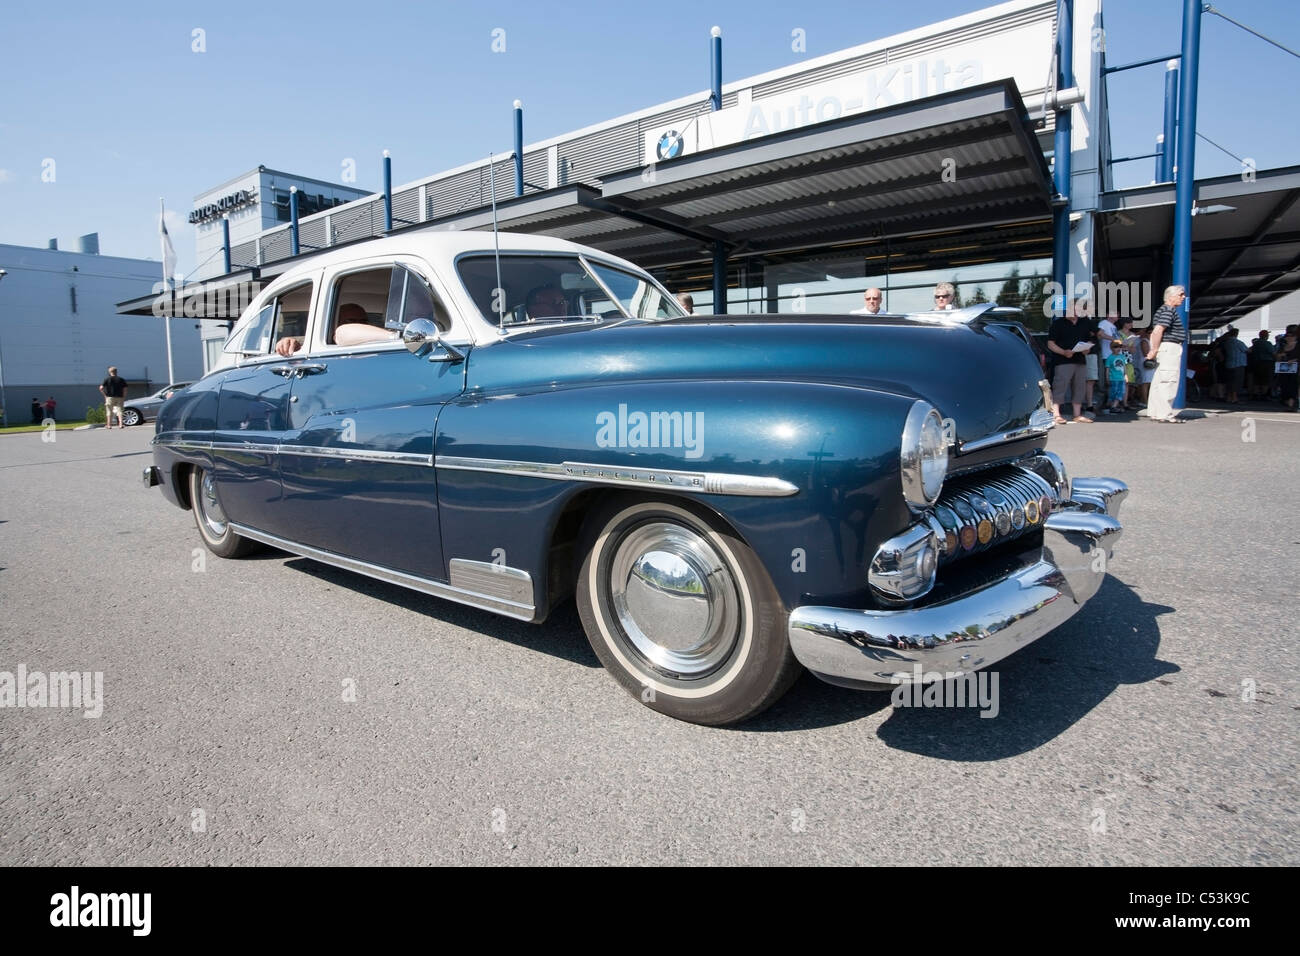 1950 Mercury Stock Photos Images Alamy 1941 4 Door Sedan V8 Sport Image